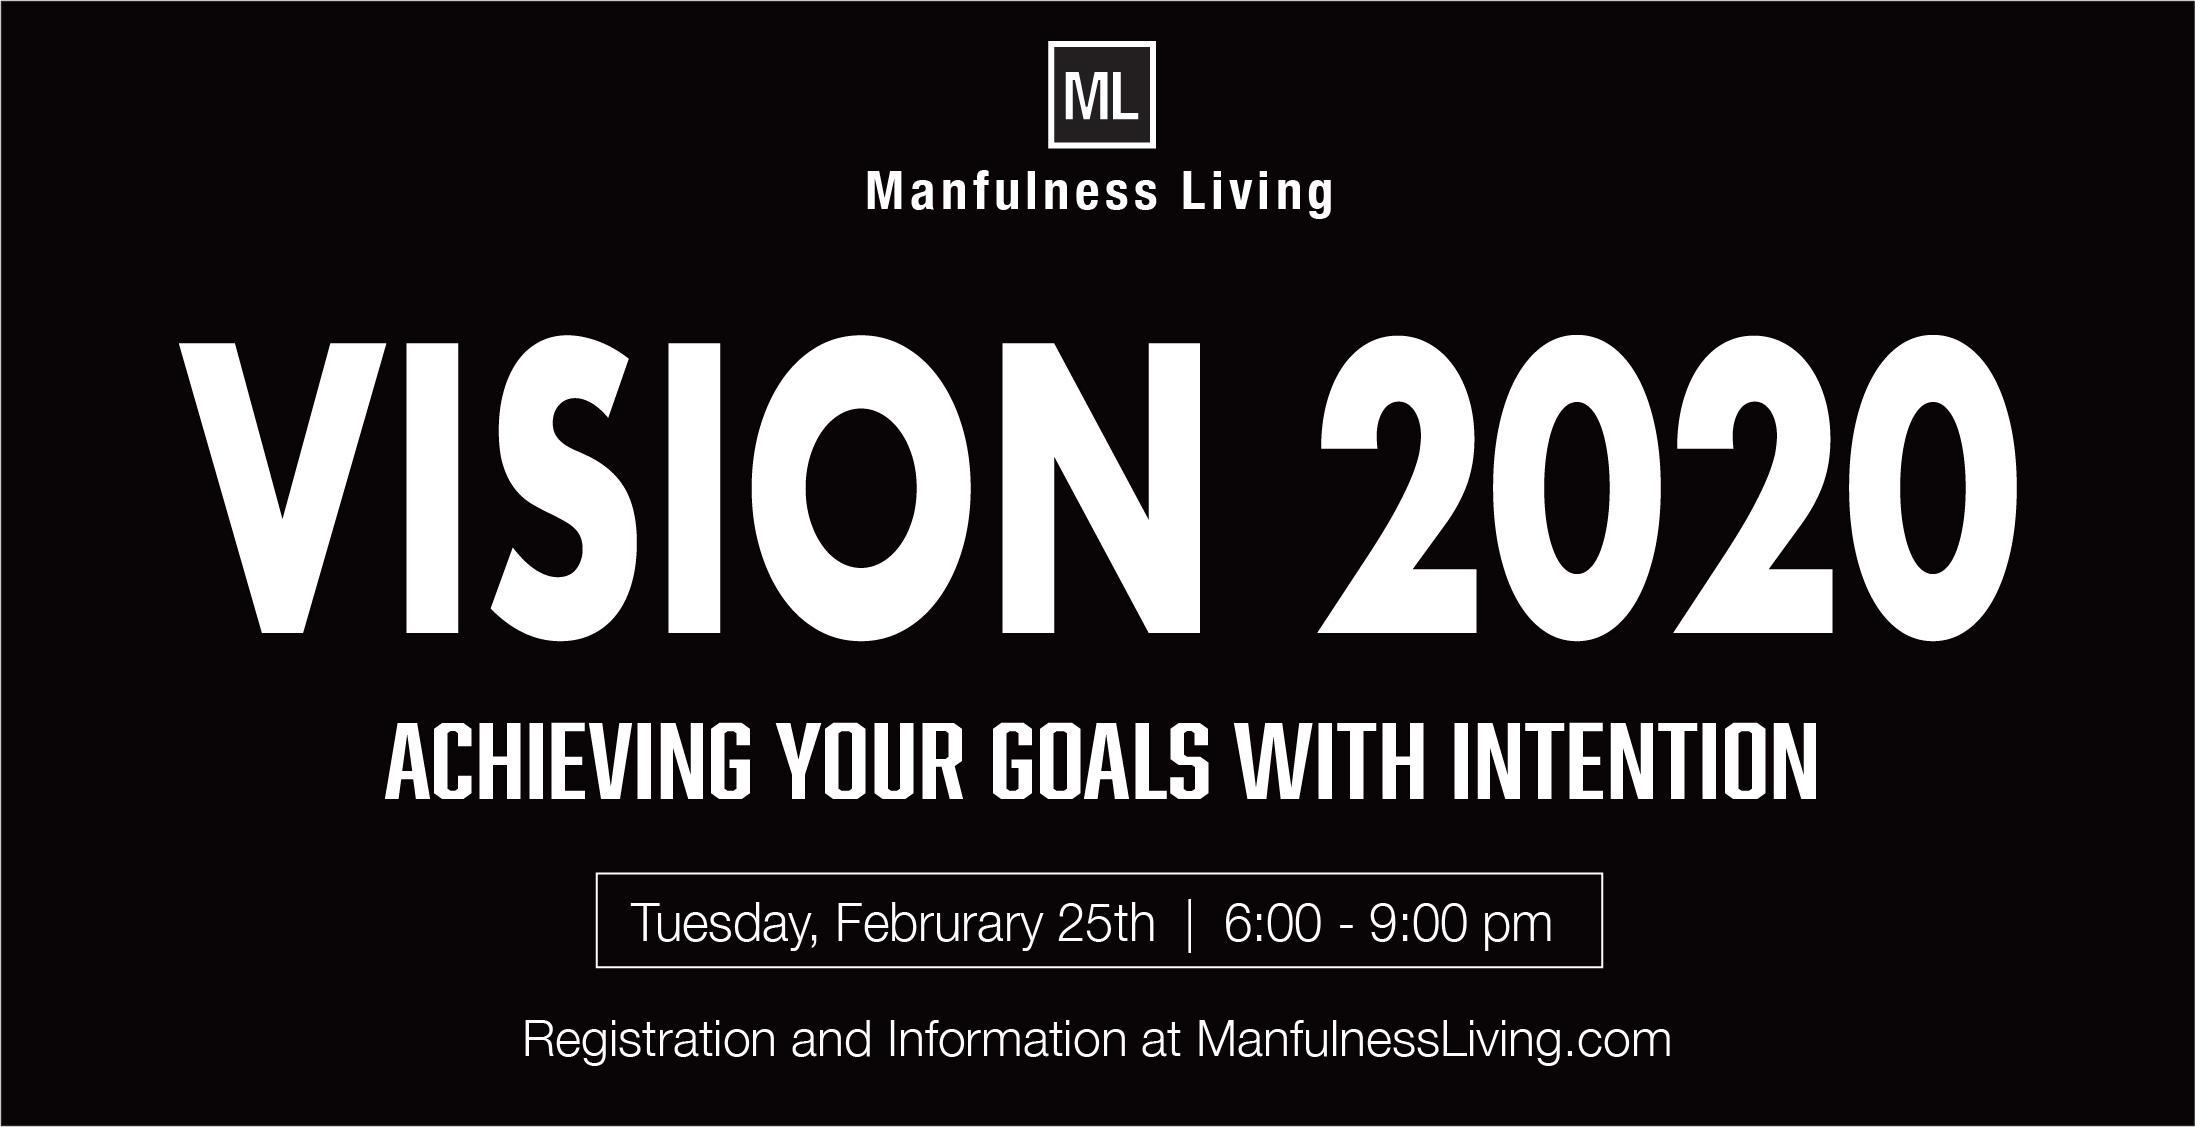 Vision 2020 - Achieving Your Goals With Intention